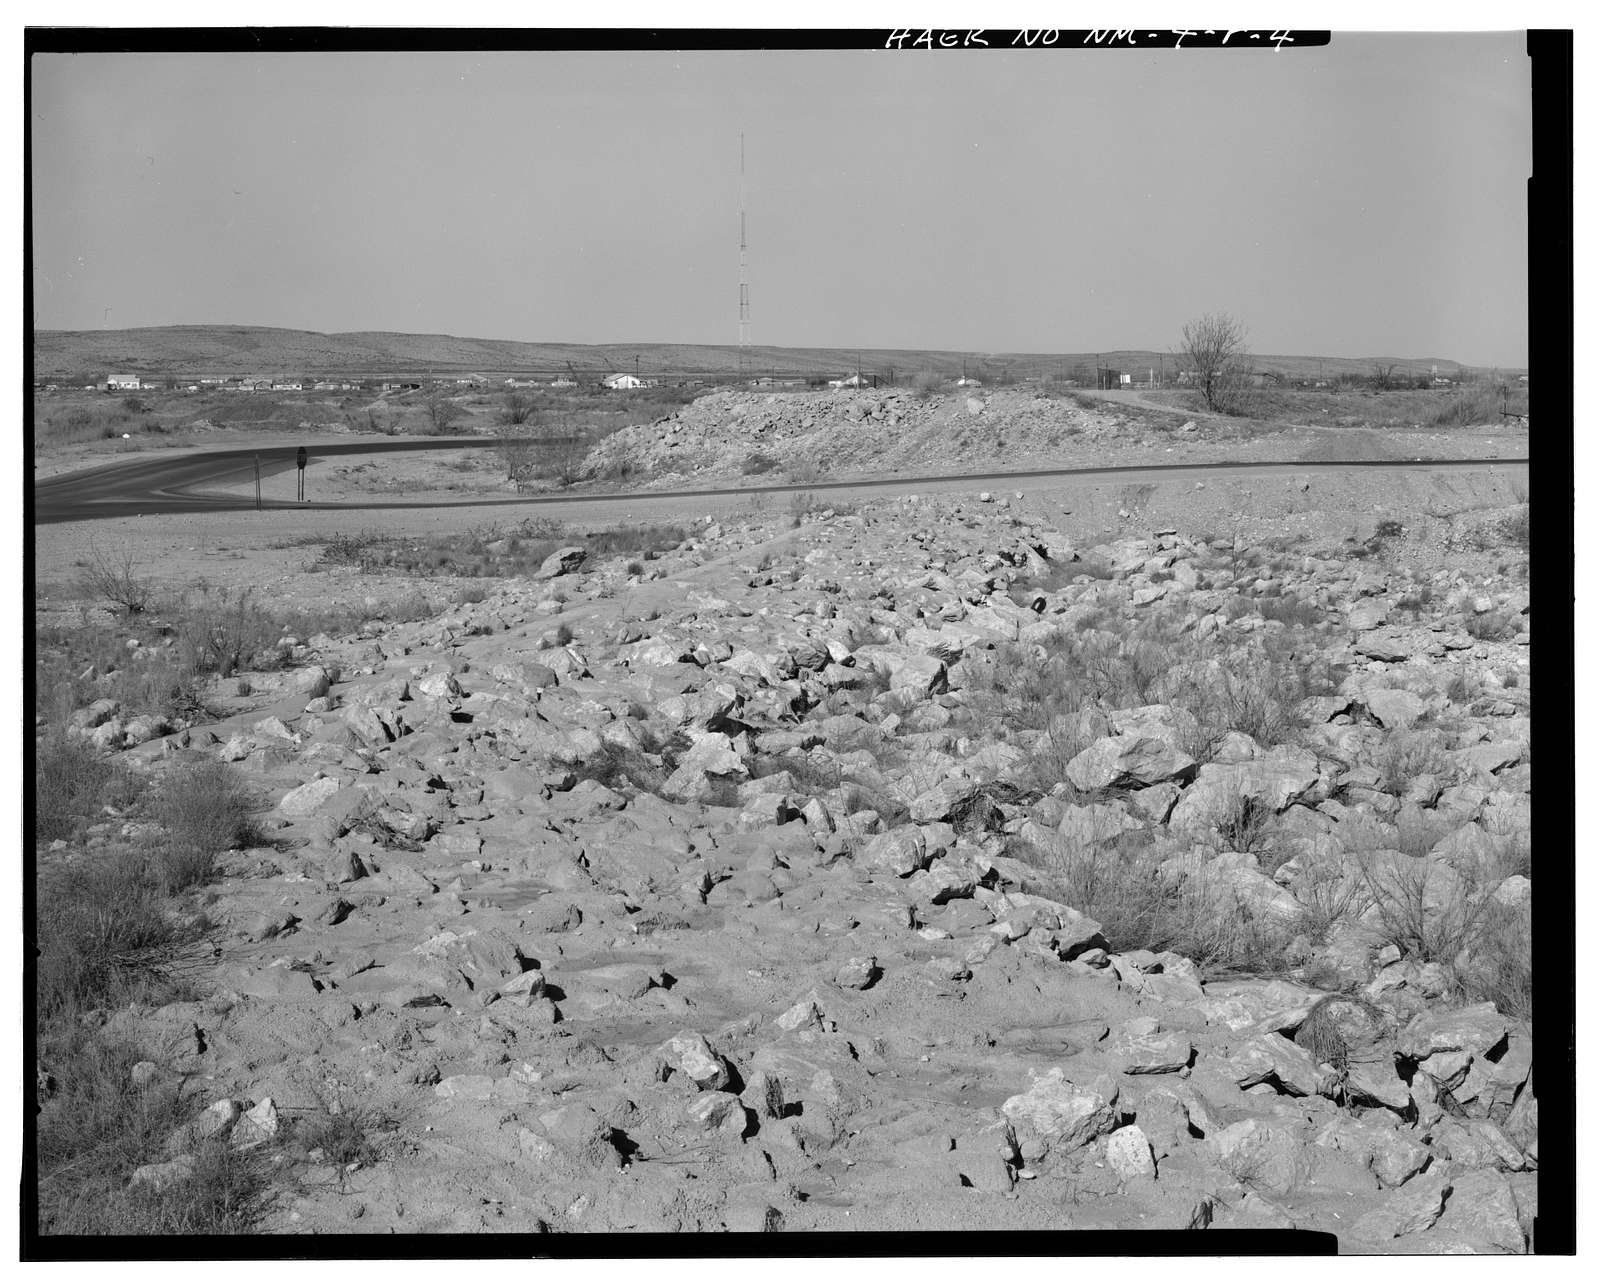 Carlsbad Irrigation District, Dark Canyon Siphon, On Main Canal, 1 mile South of Carlsbad, Carlsbad, Eddy County, NM